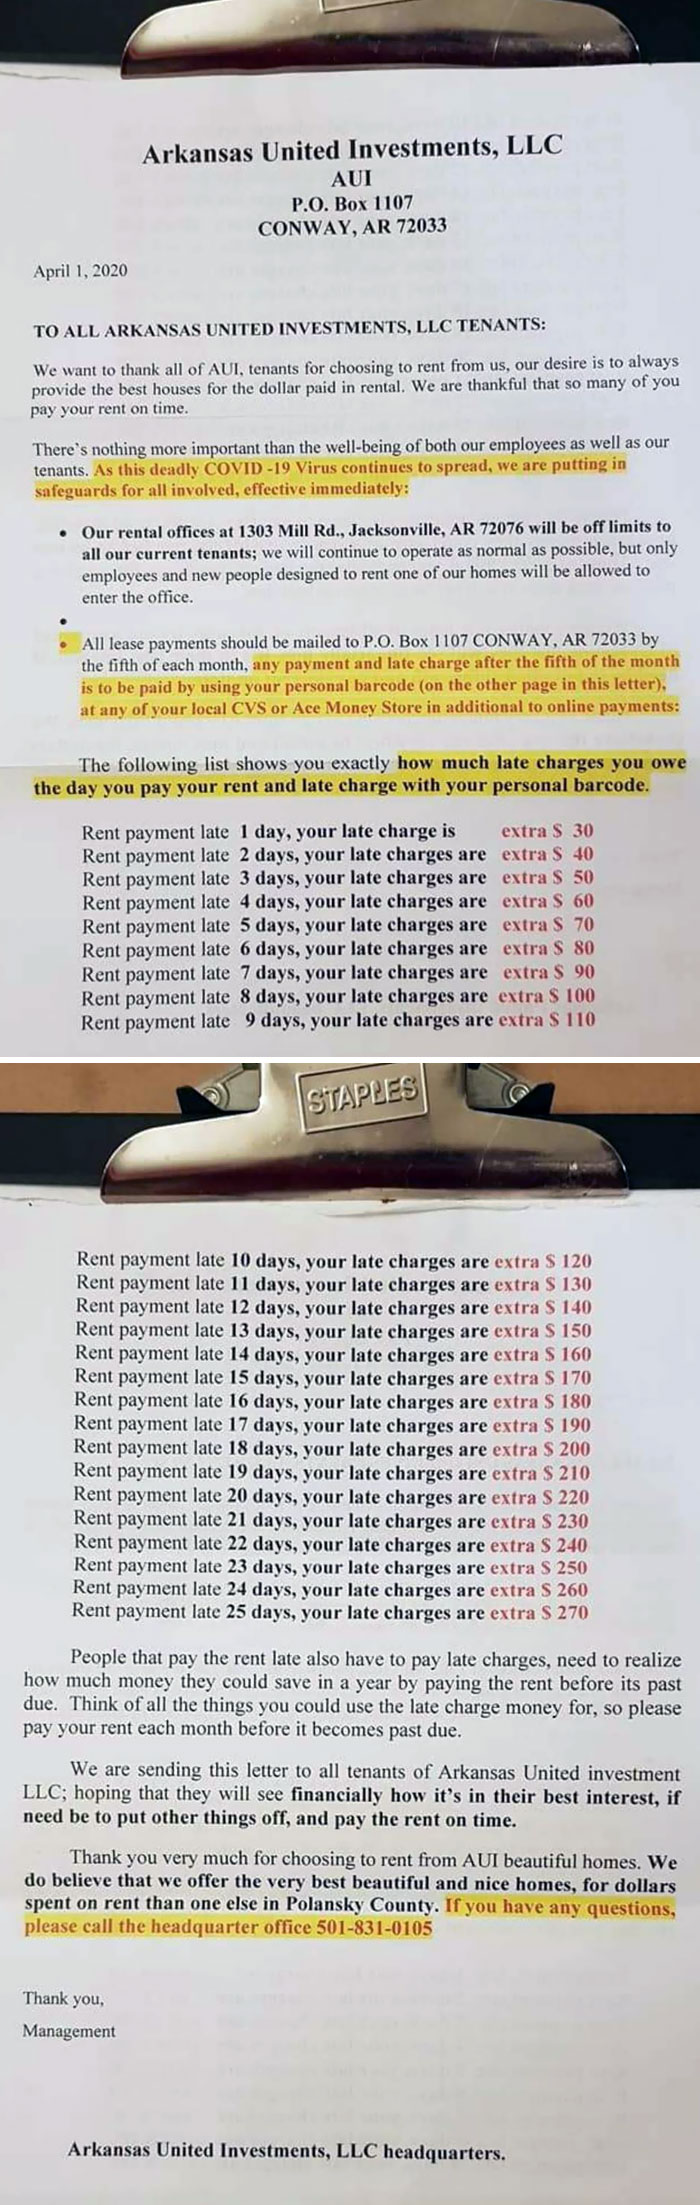 """Nope, This Wasn't An April Fool's Joke. Landlord's Still Charging Late Fees, Spelled The County Name And Several Other Words Wrong, And Is Even Asking For People To Pay Rent In Advance To """"Save Money"""""""